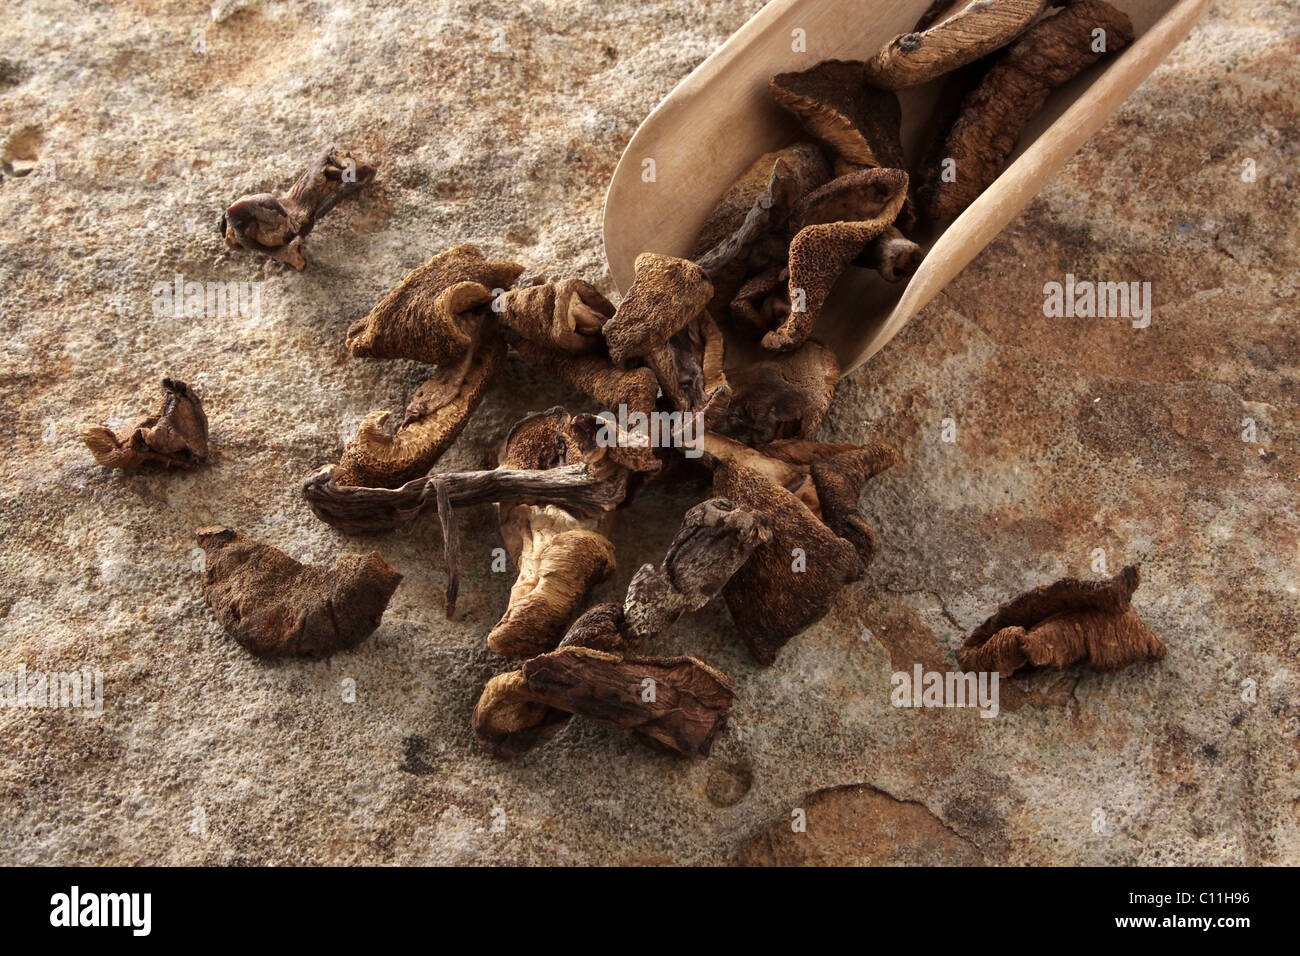 Dried Slippery Jack (Suillus luteus) with a wooden shovel, on stone surface Stock Photo